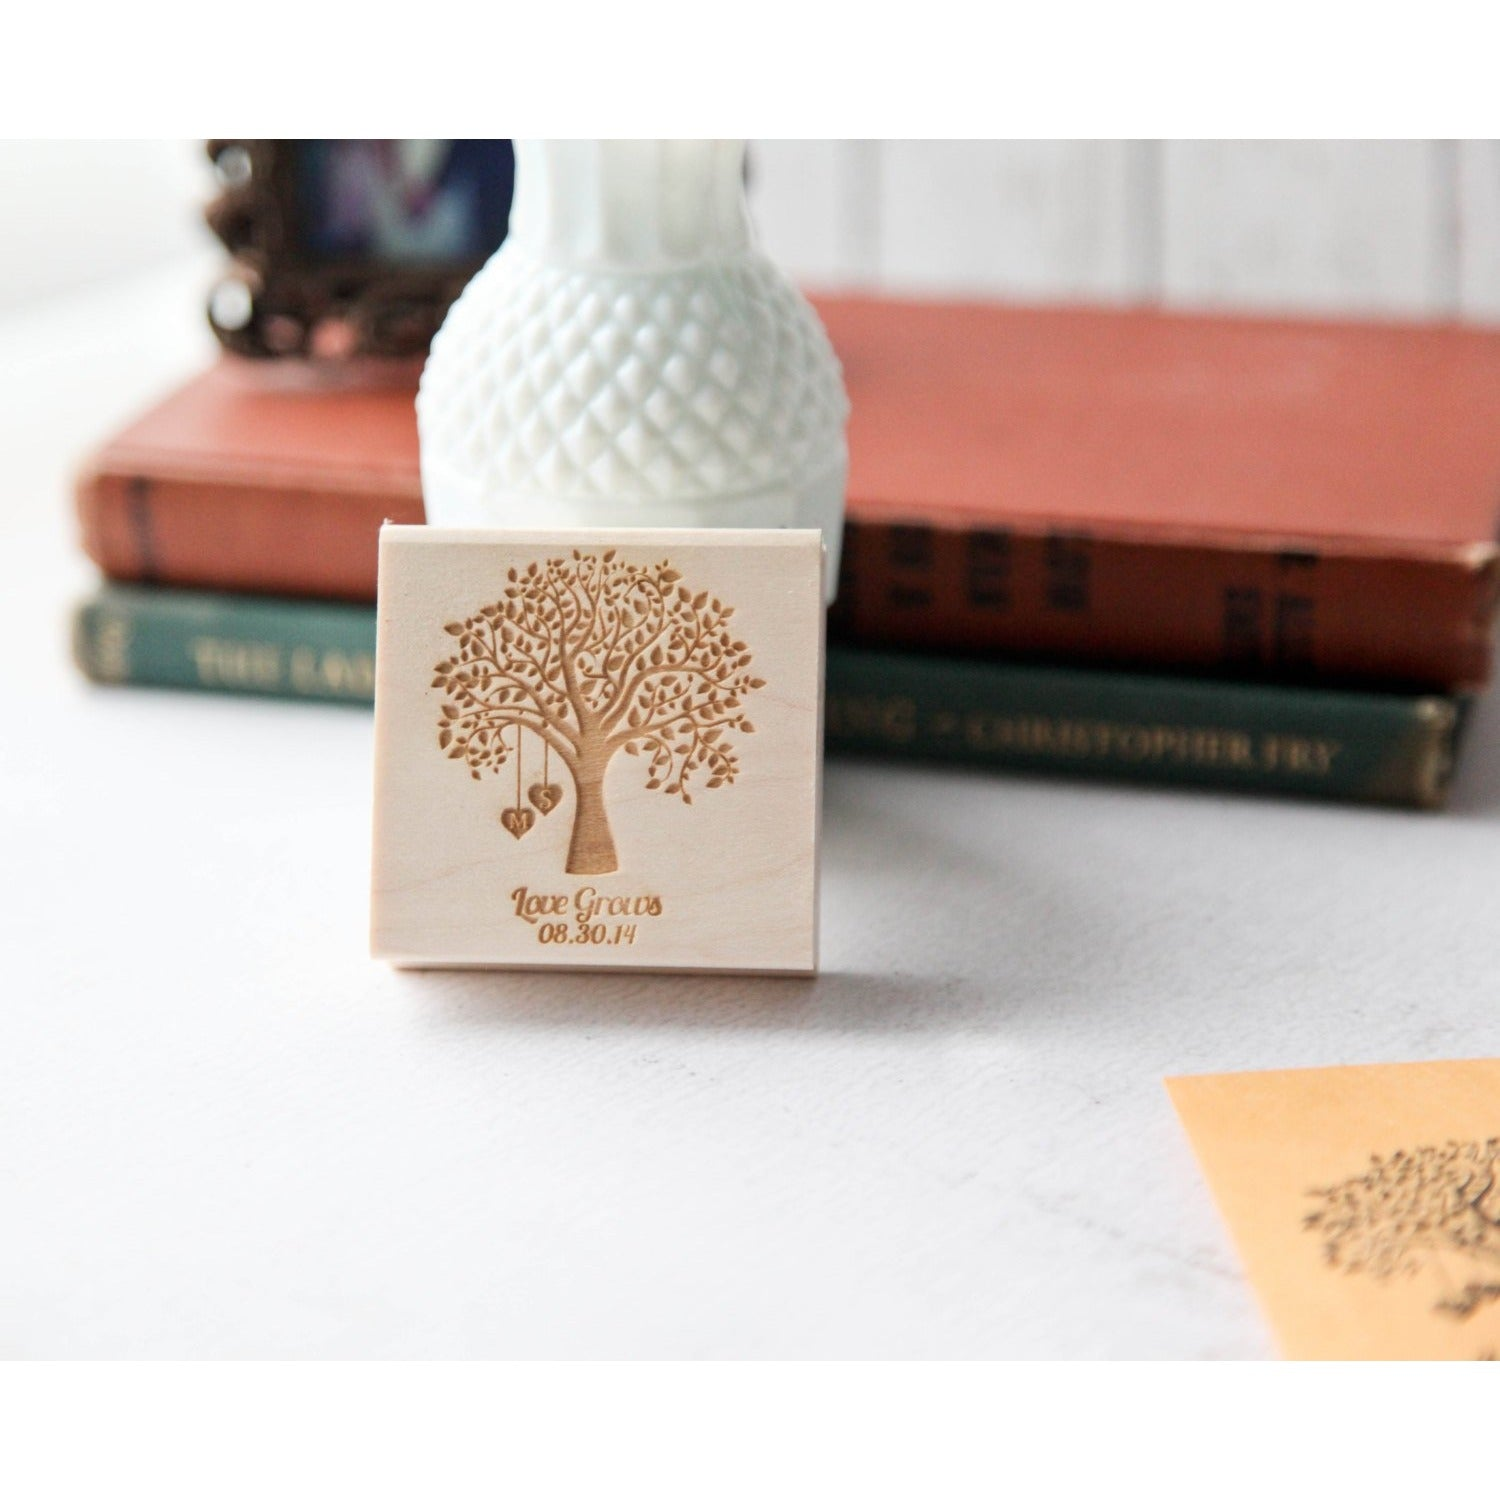 Customized Love Grows Rubber Stamp, Seed Packet Rubber Stamp, Wedding Favor Rubber Stamp